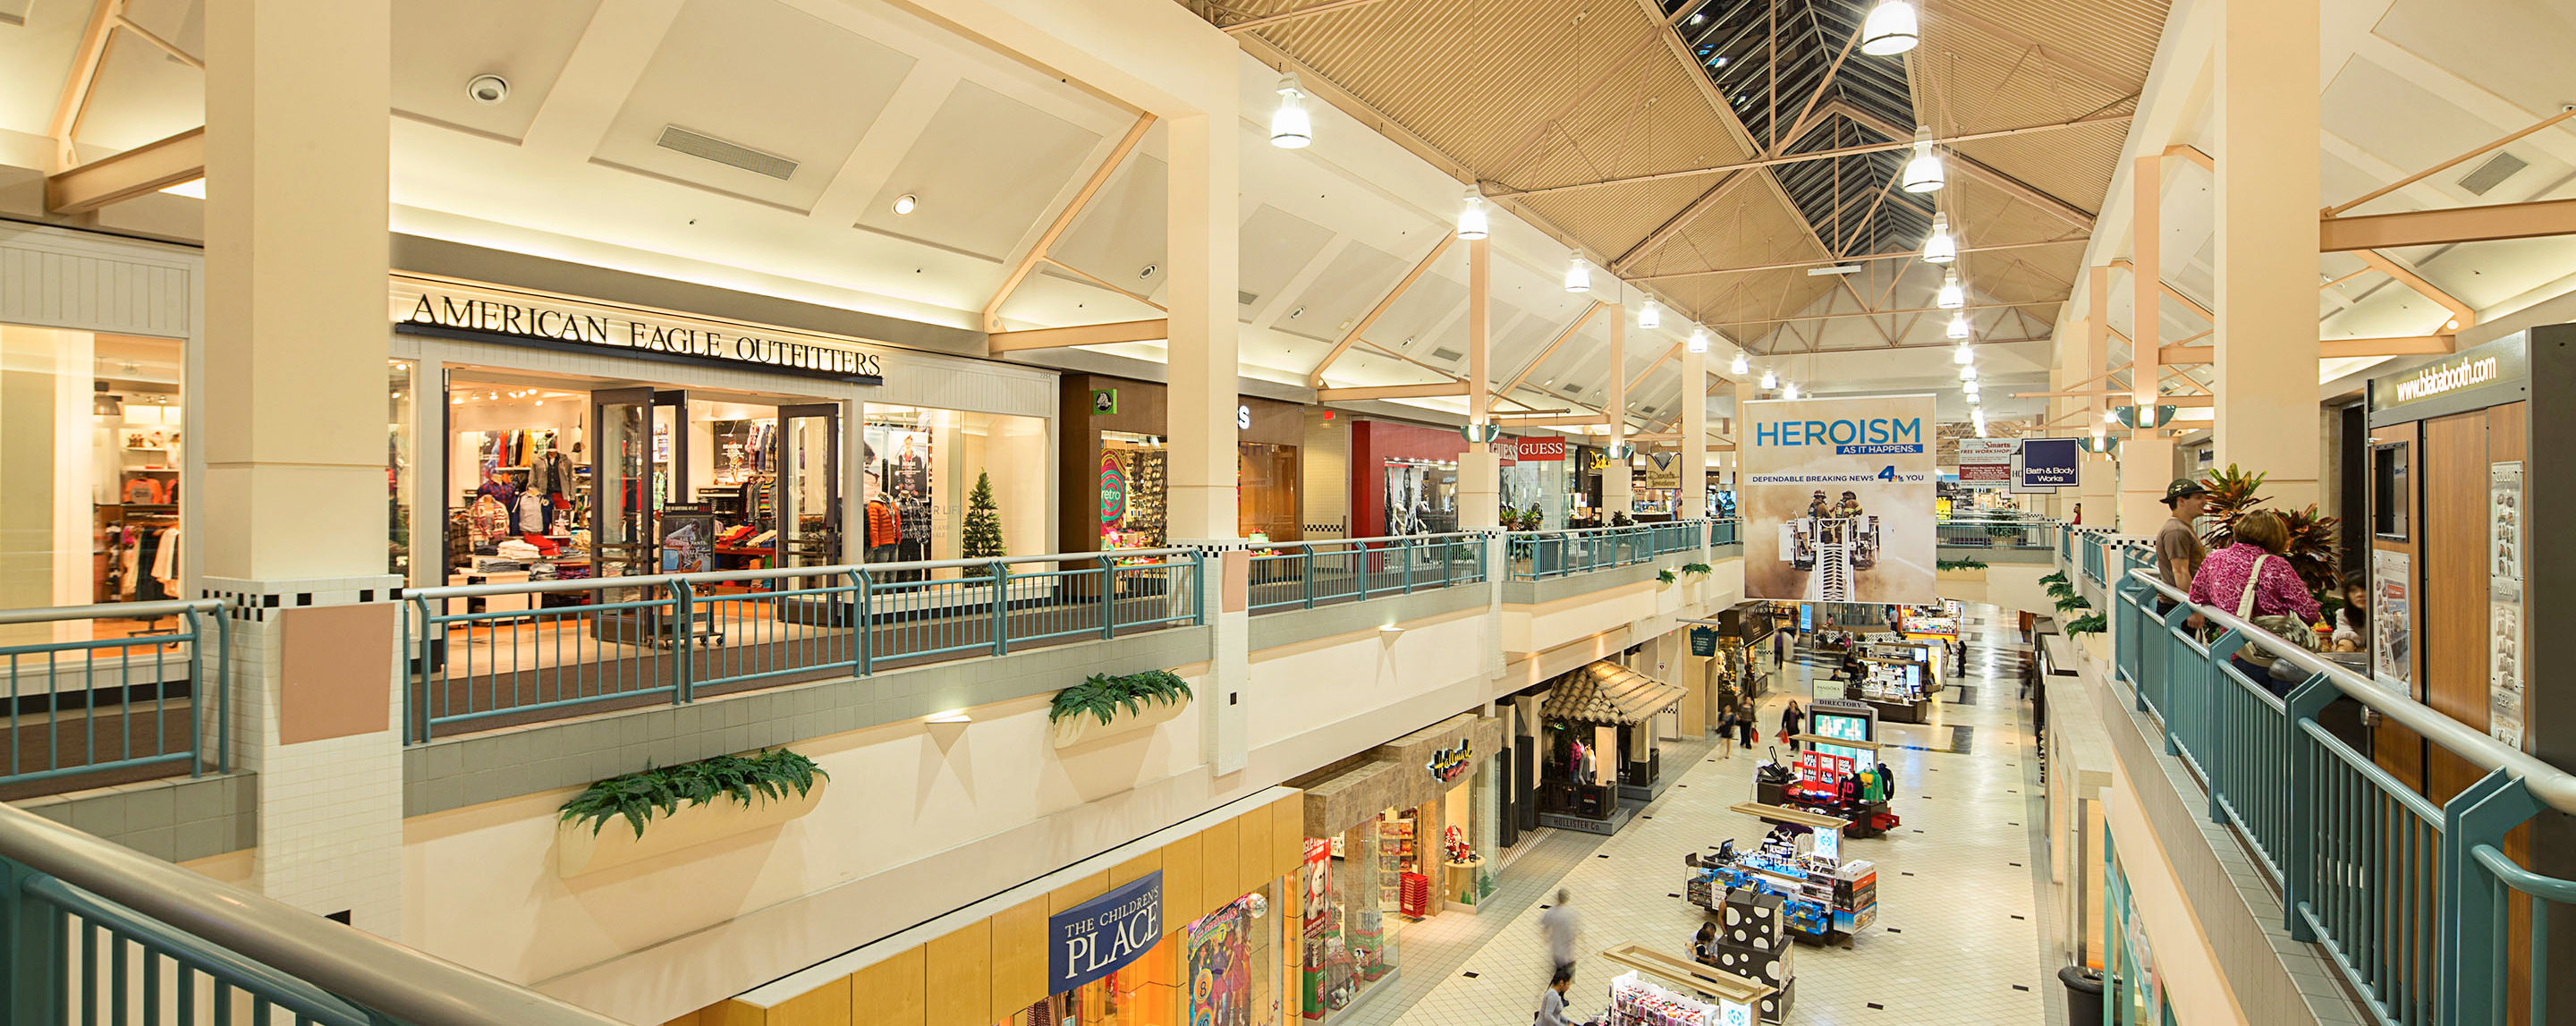 Galleria at tyler shopping centers malls riverside for Jewelry stores westheimer houston tx